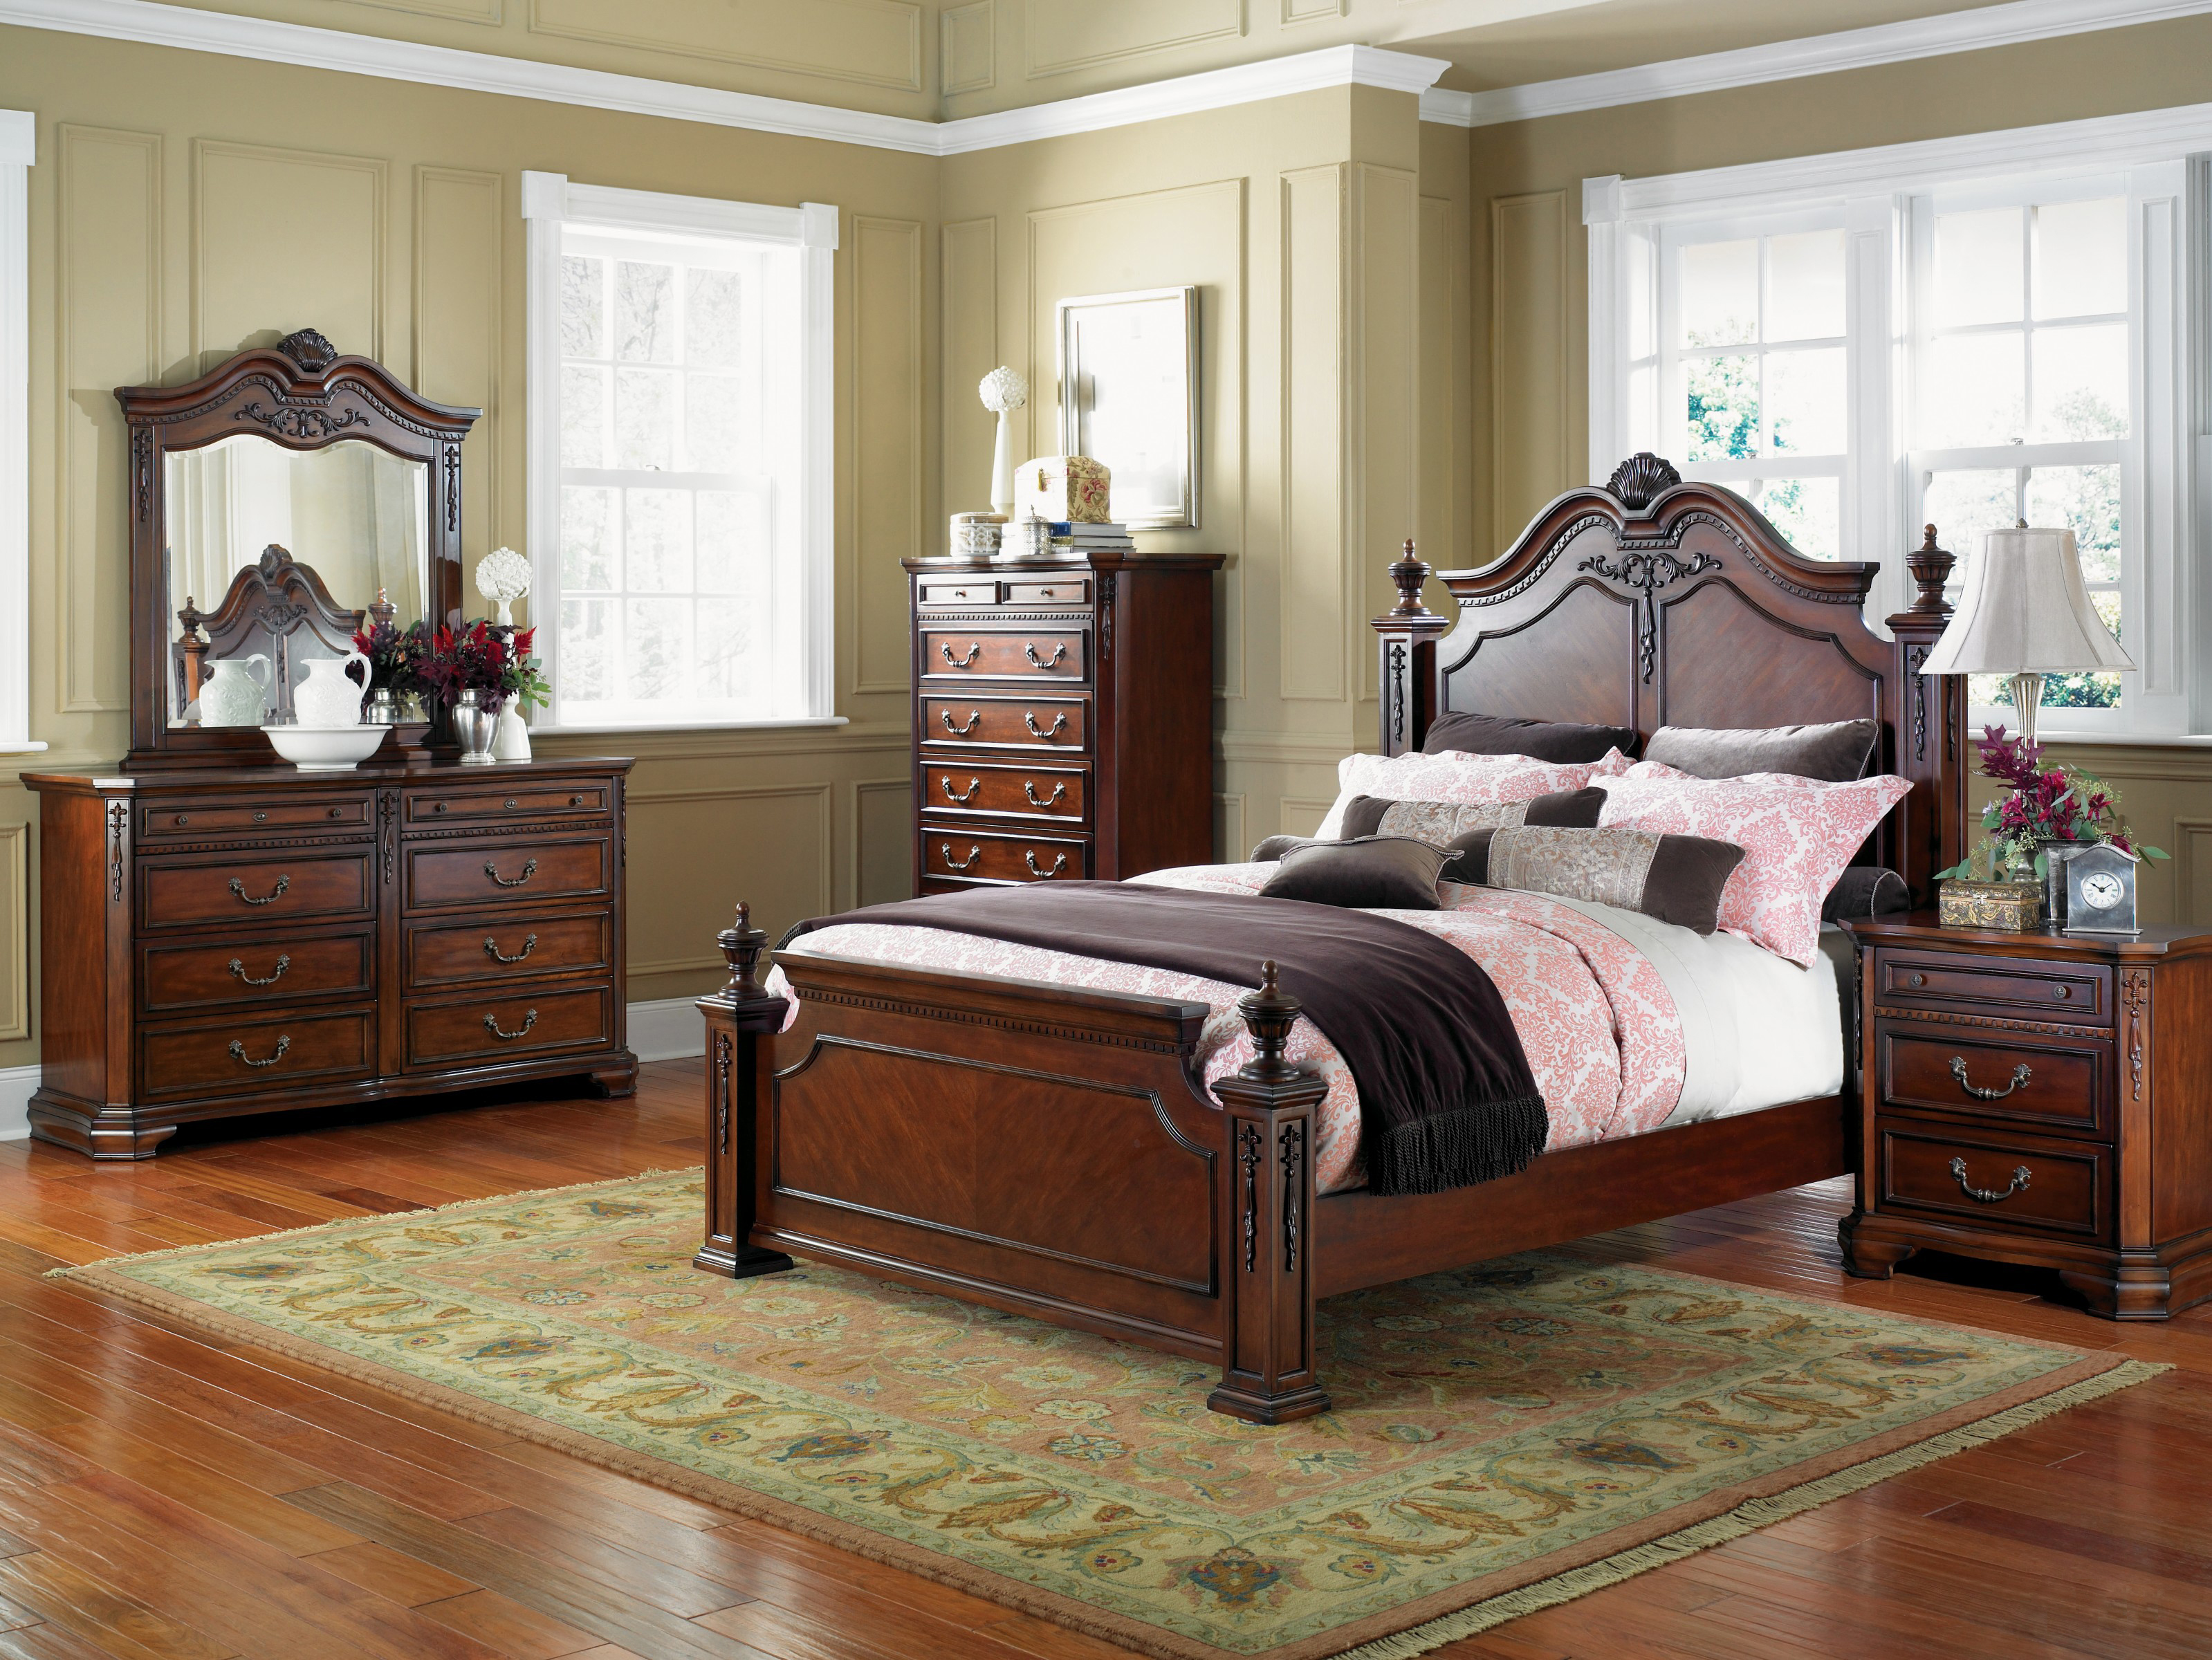 Bedroom Furniture Images Excelsior Bedroom Furniture Set Collection Request A FREE Quote